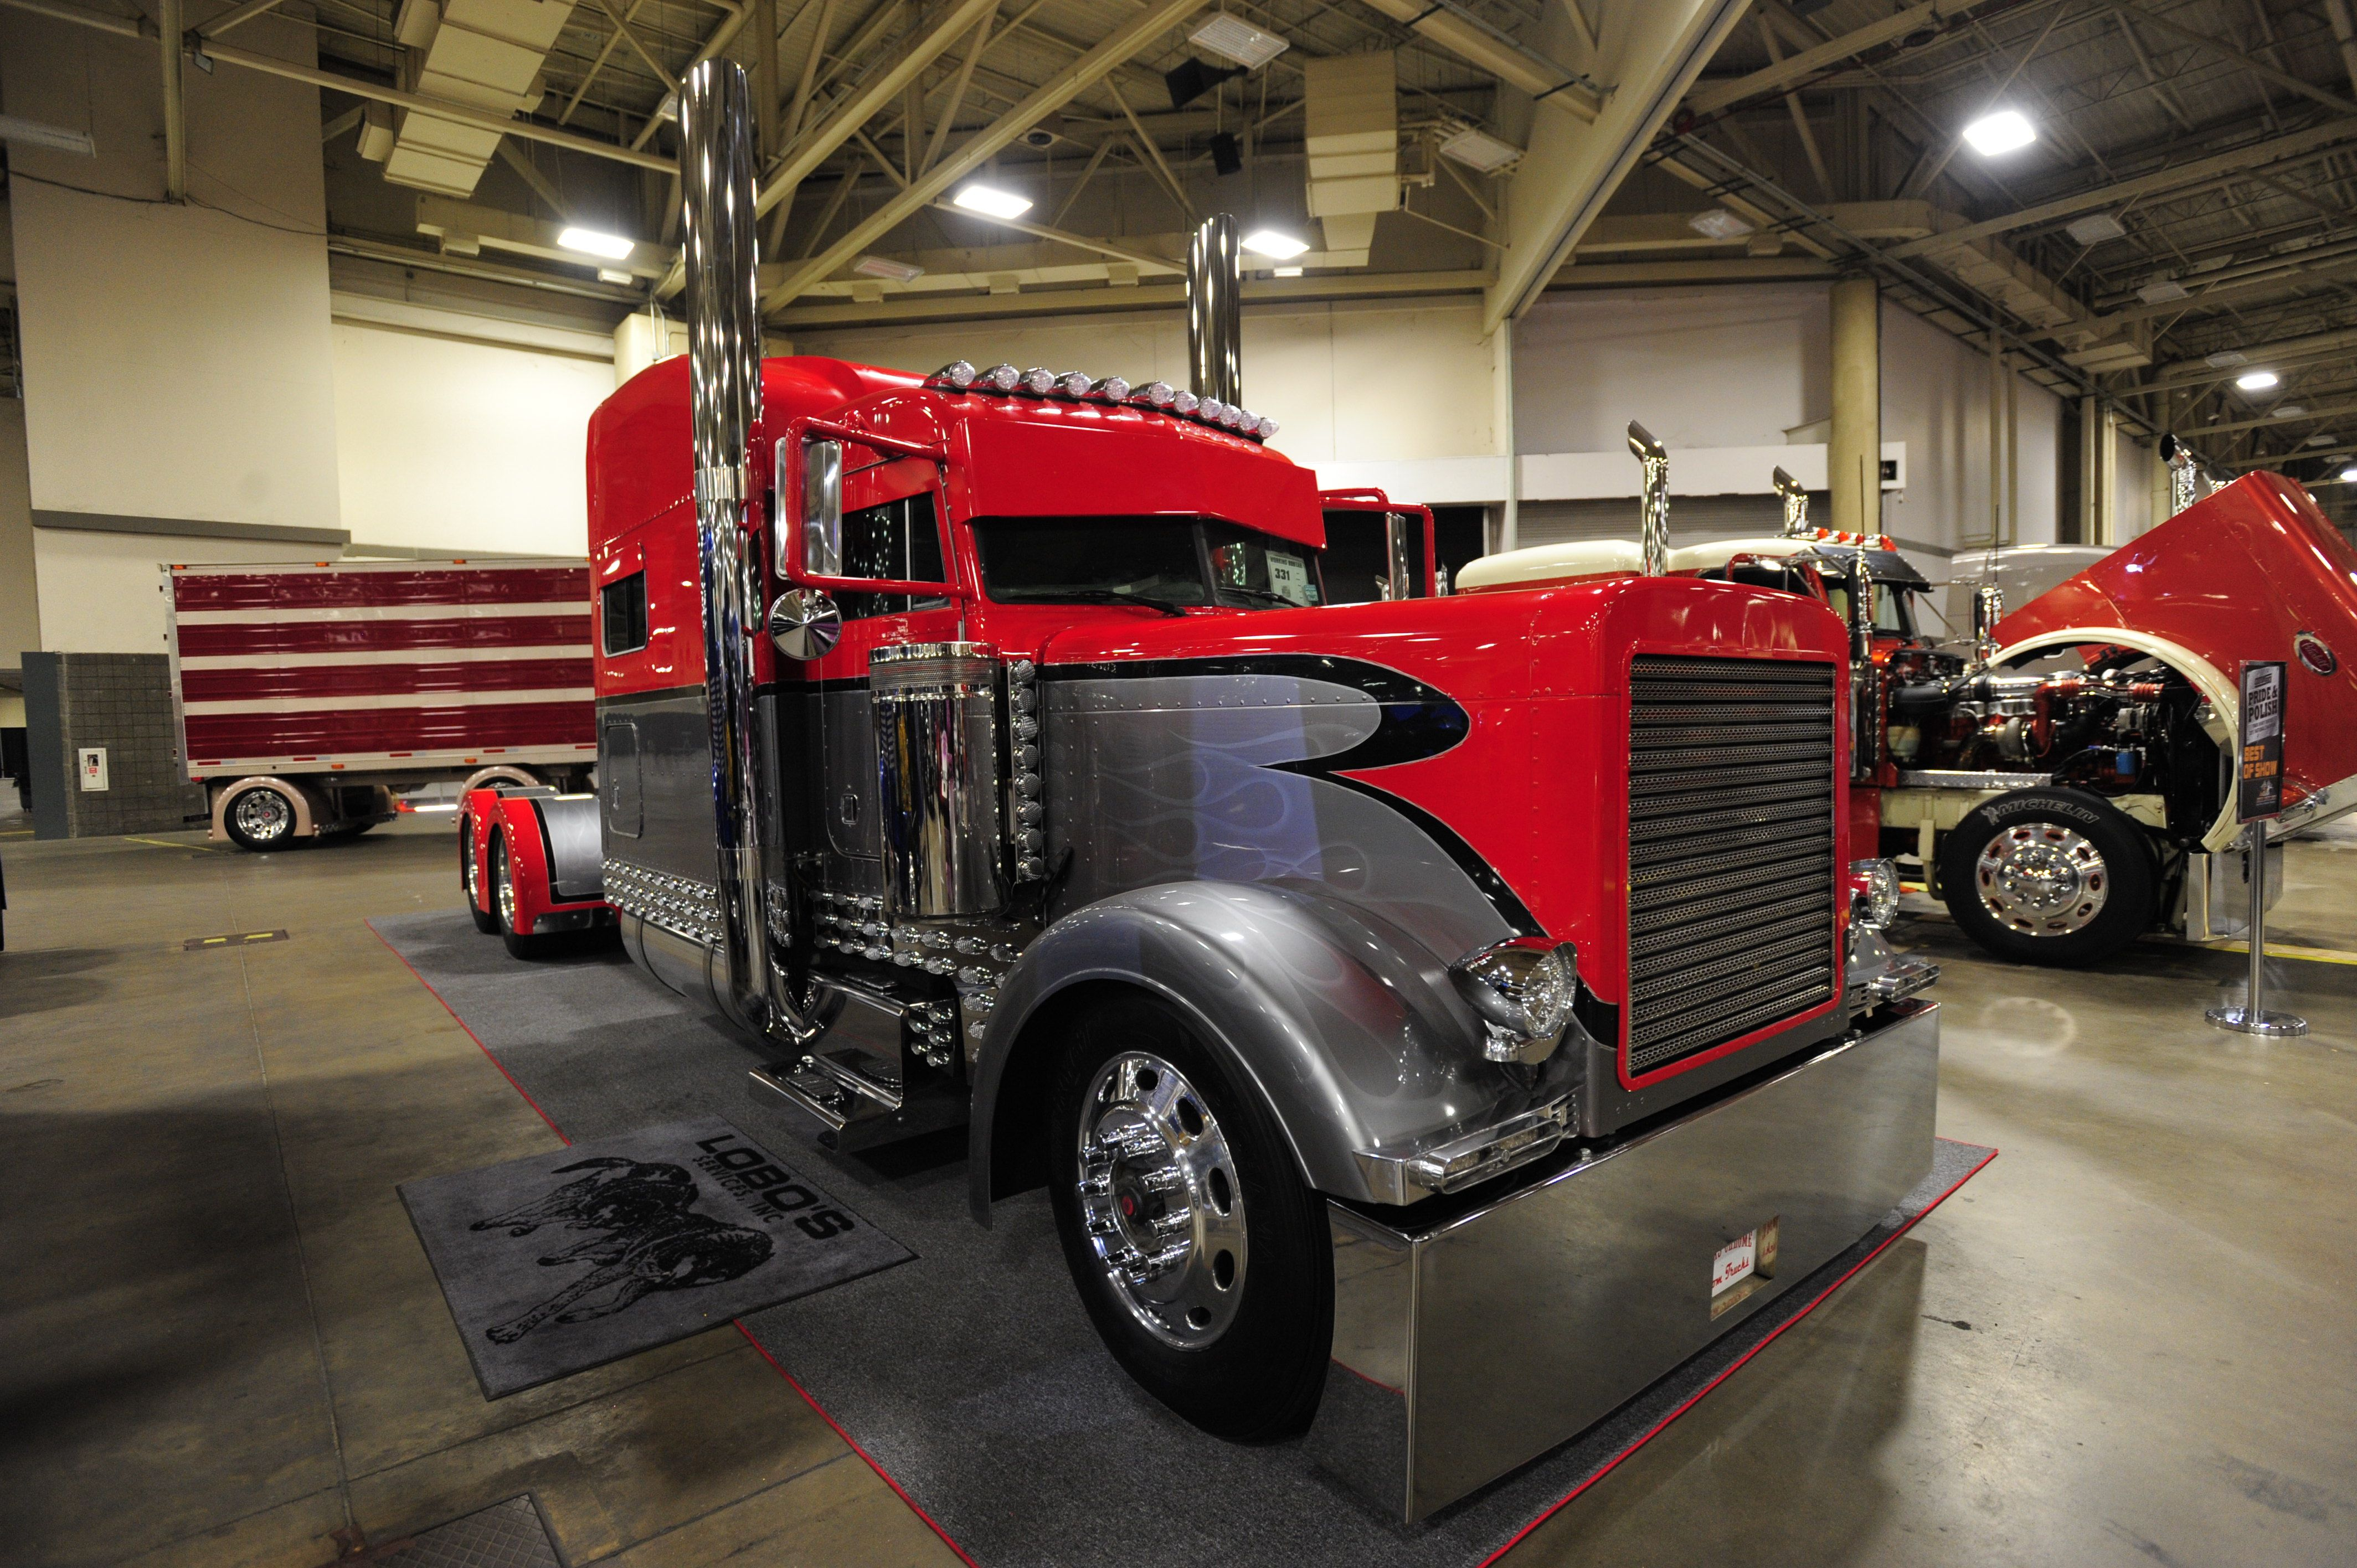 lobo 39 s pride the san antonio based texas chrome shop built this 03 peterbilt 379 for lobo s. Black Bedroom Furniture Sets. Home Design Ideas